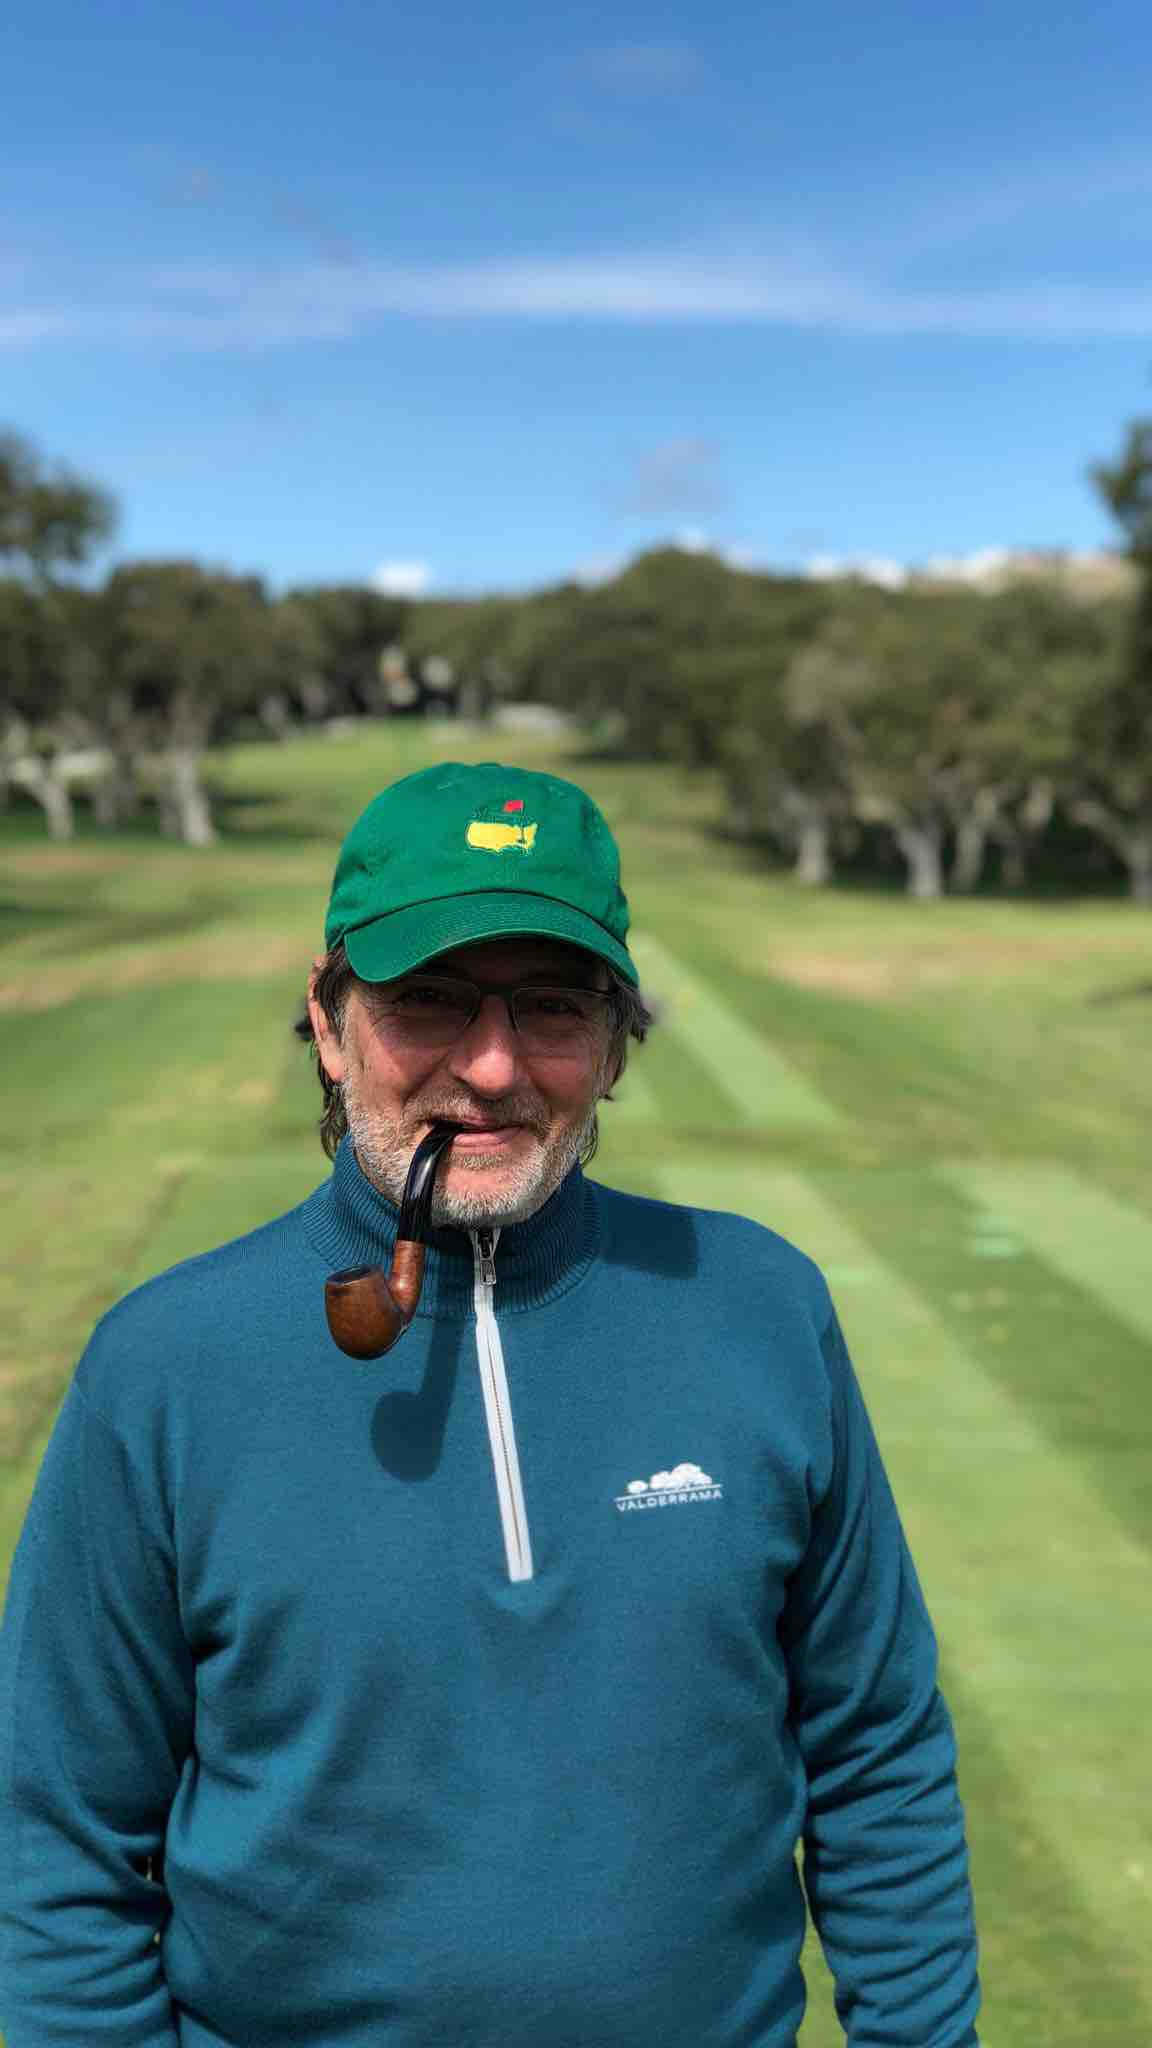 Avatar of golfer named Jean-Michel Barbey